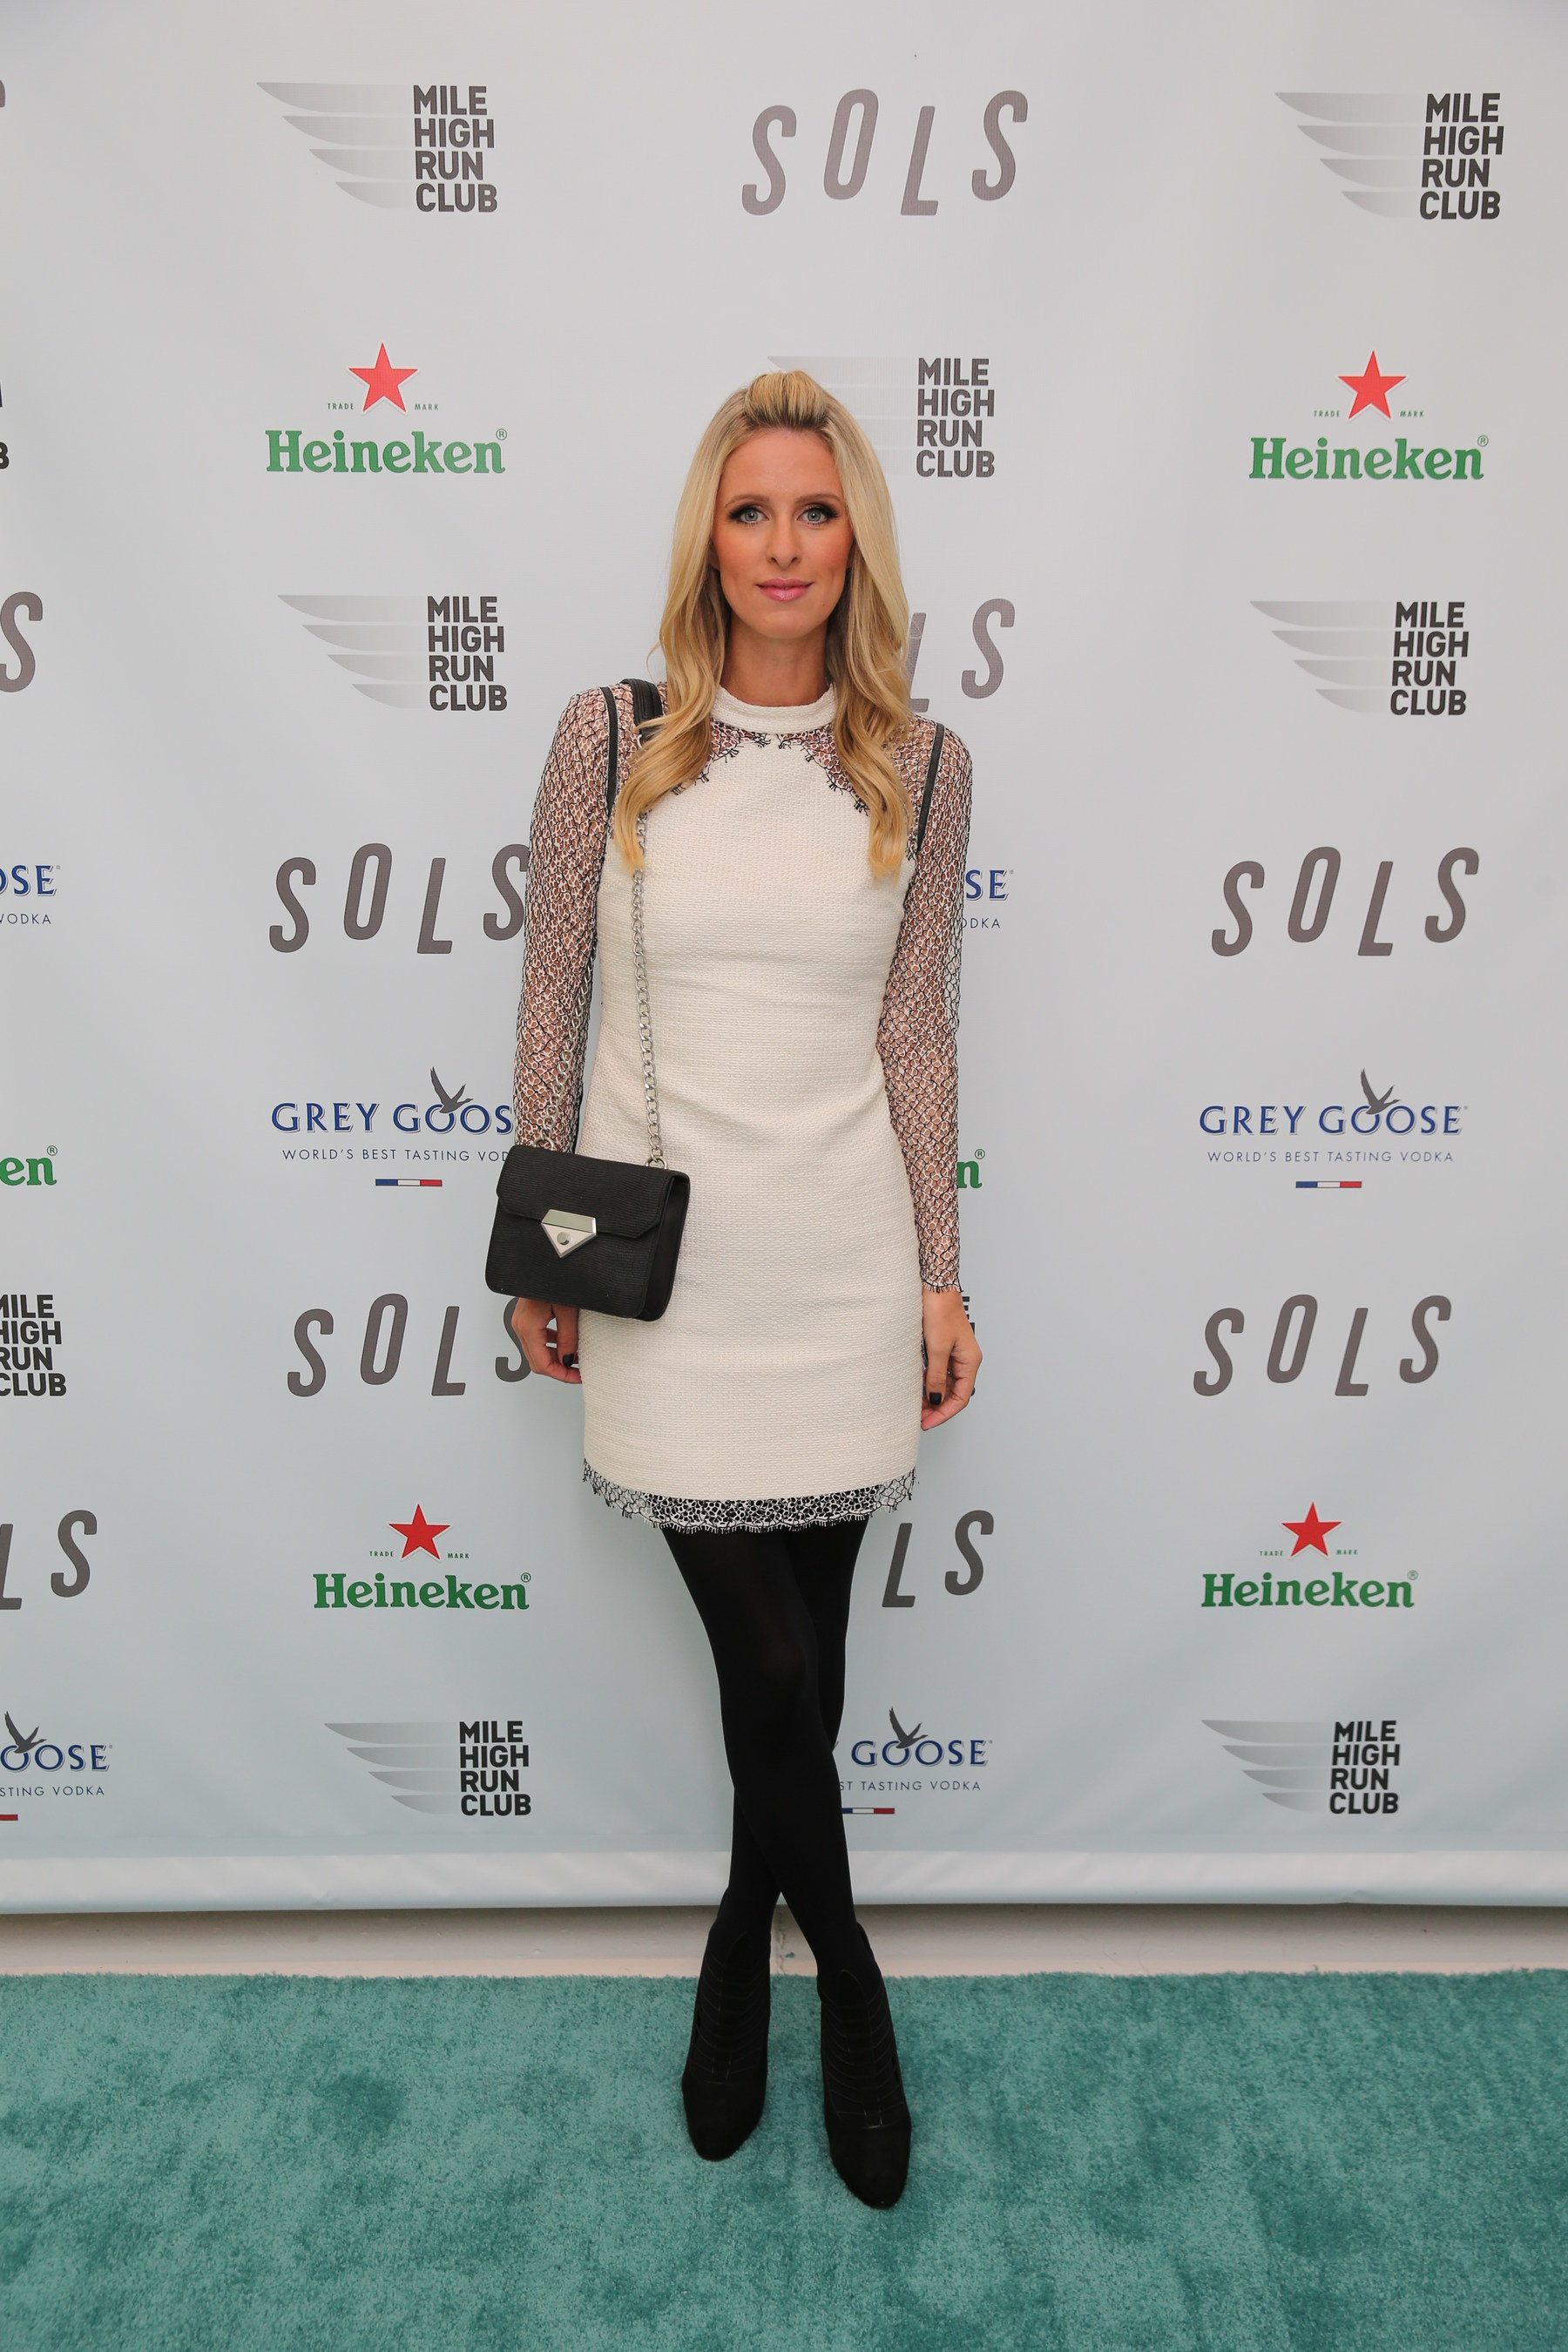 Nicky Hilton attends the SOLS launch party for the new SOLS Flex insole (Photo by Neilson Barnard/Getty Images for SOLS)